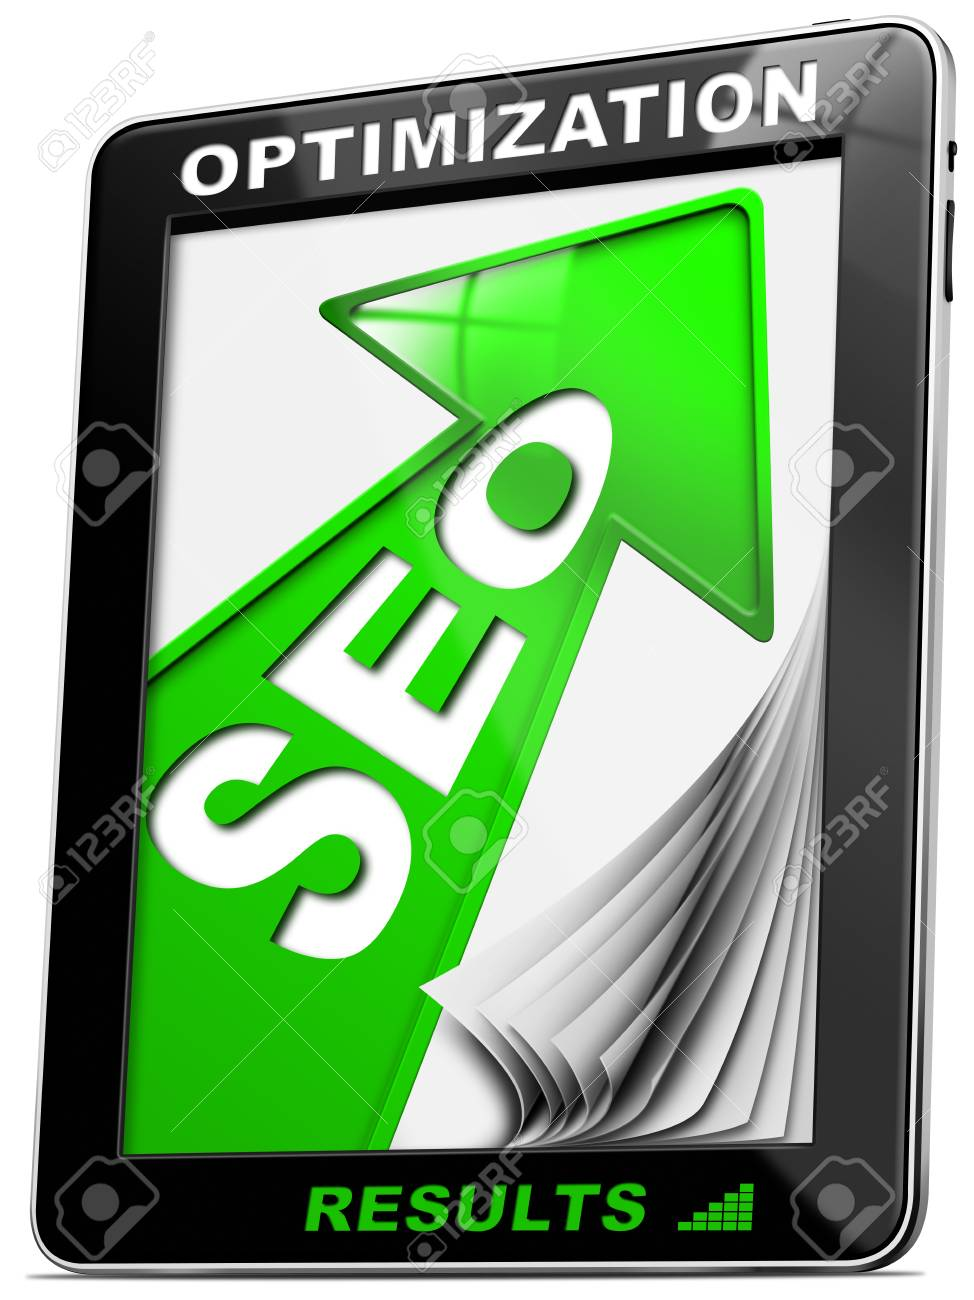 Written SEO - Search engine optimization with green arrow, globe and tablet pc Stock Photo - 16704368